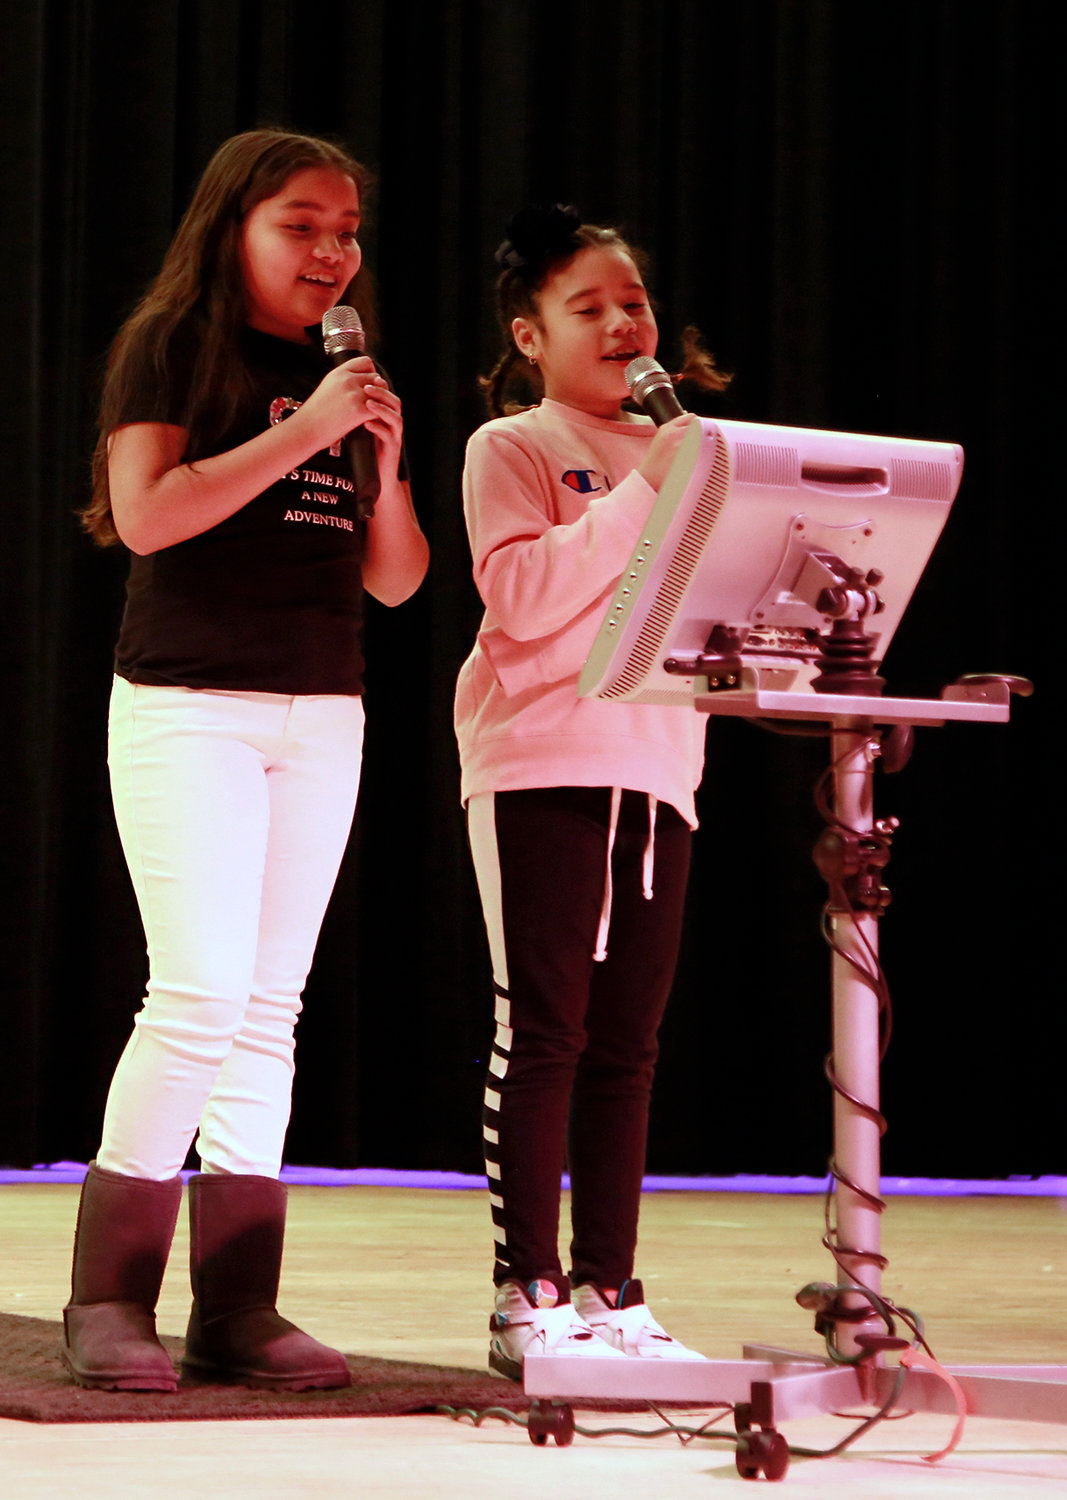 Fifth-grader Angie Navidad, left, and fourth-grader Melanie Vasquez sang 'Young Blood,' at the talent show.